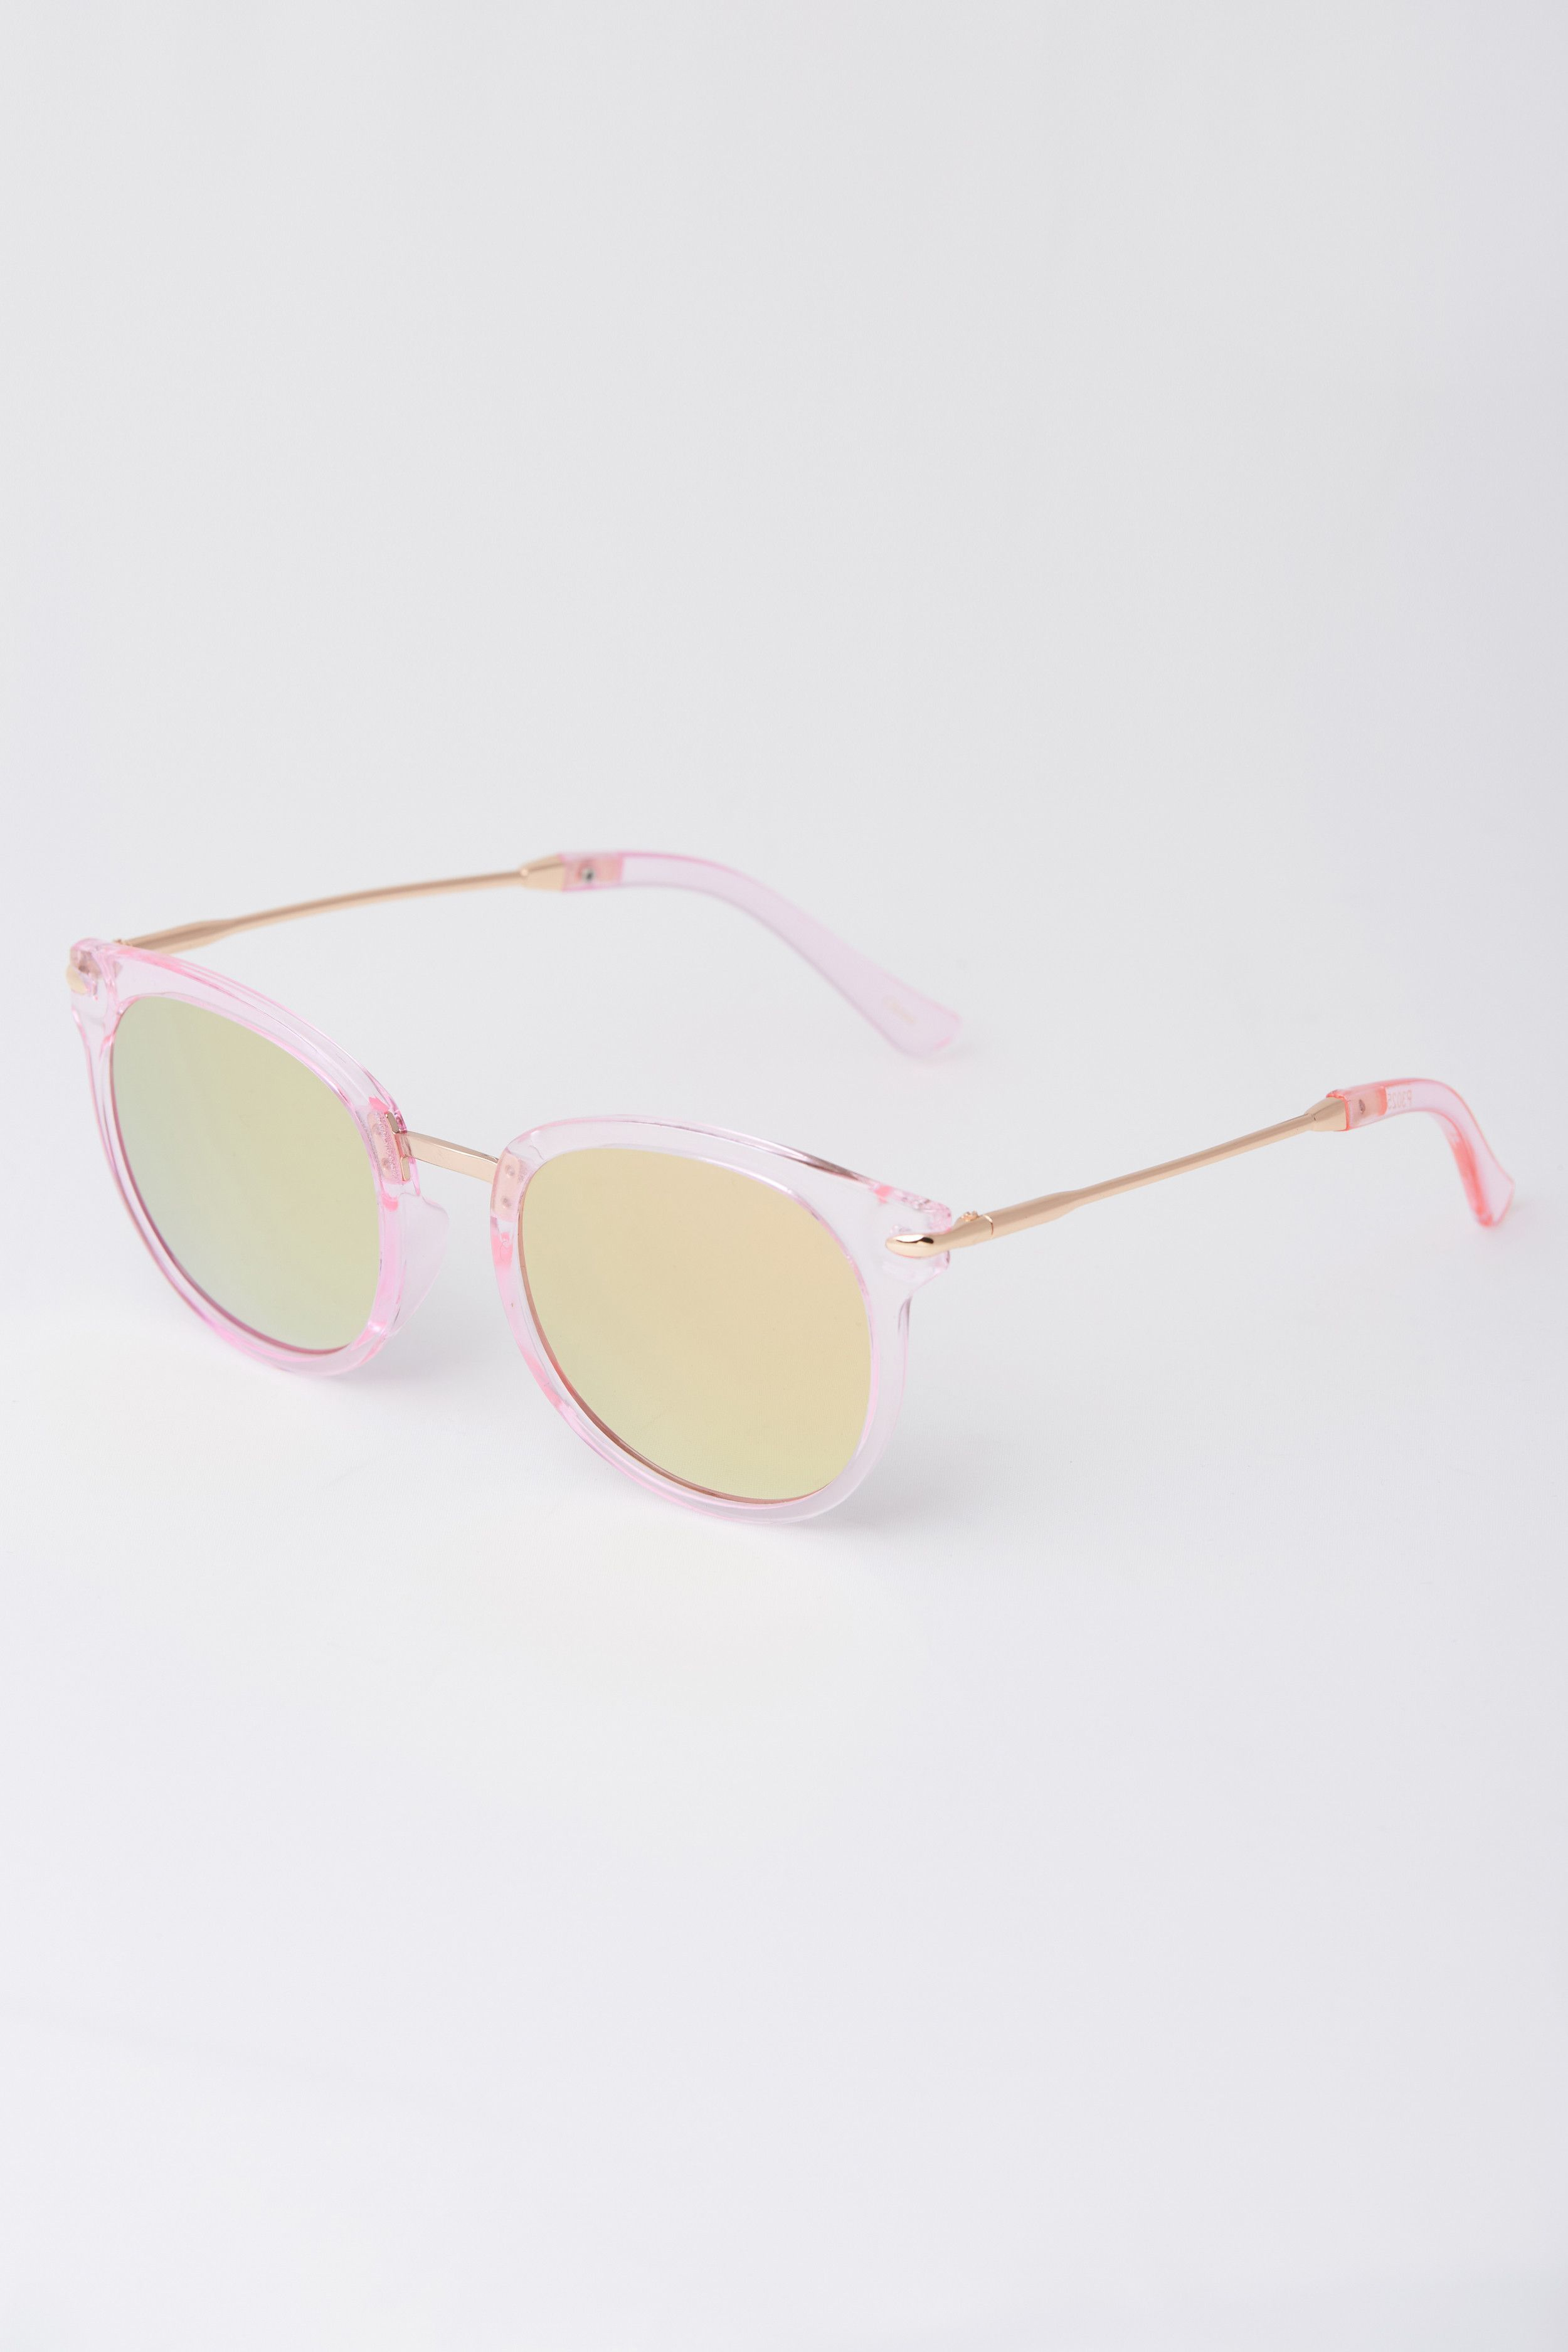 Mirrored Pink Clear Sunglasses